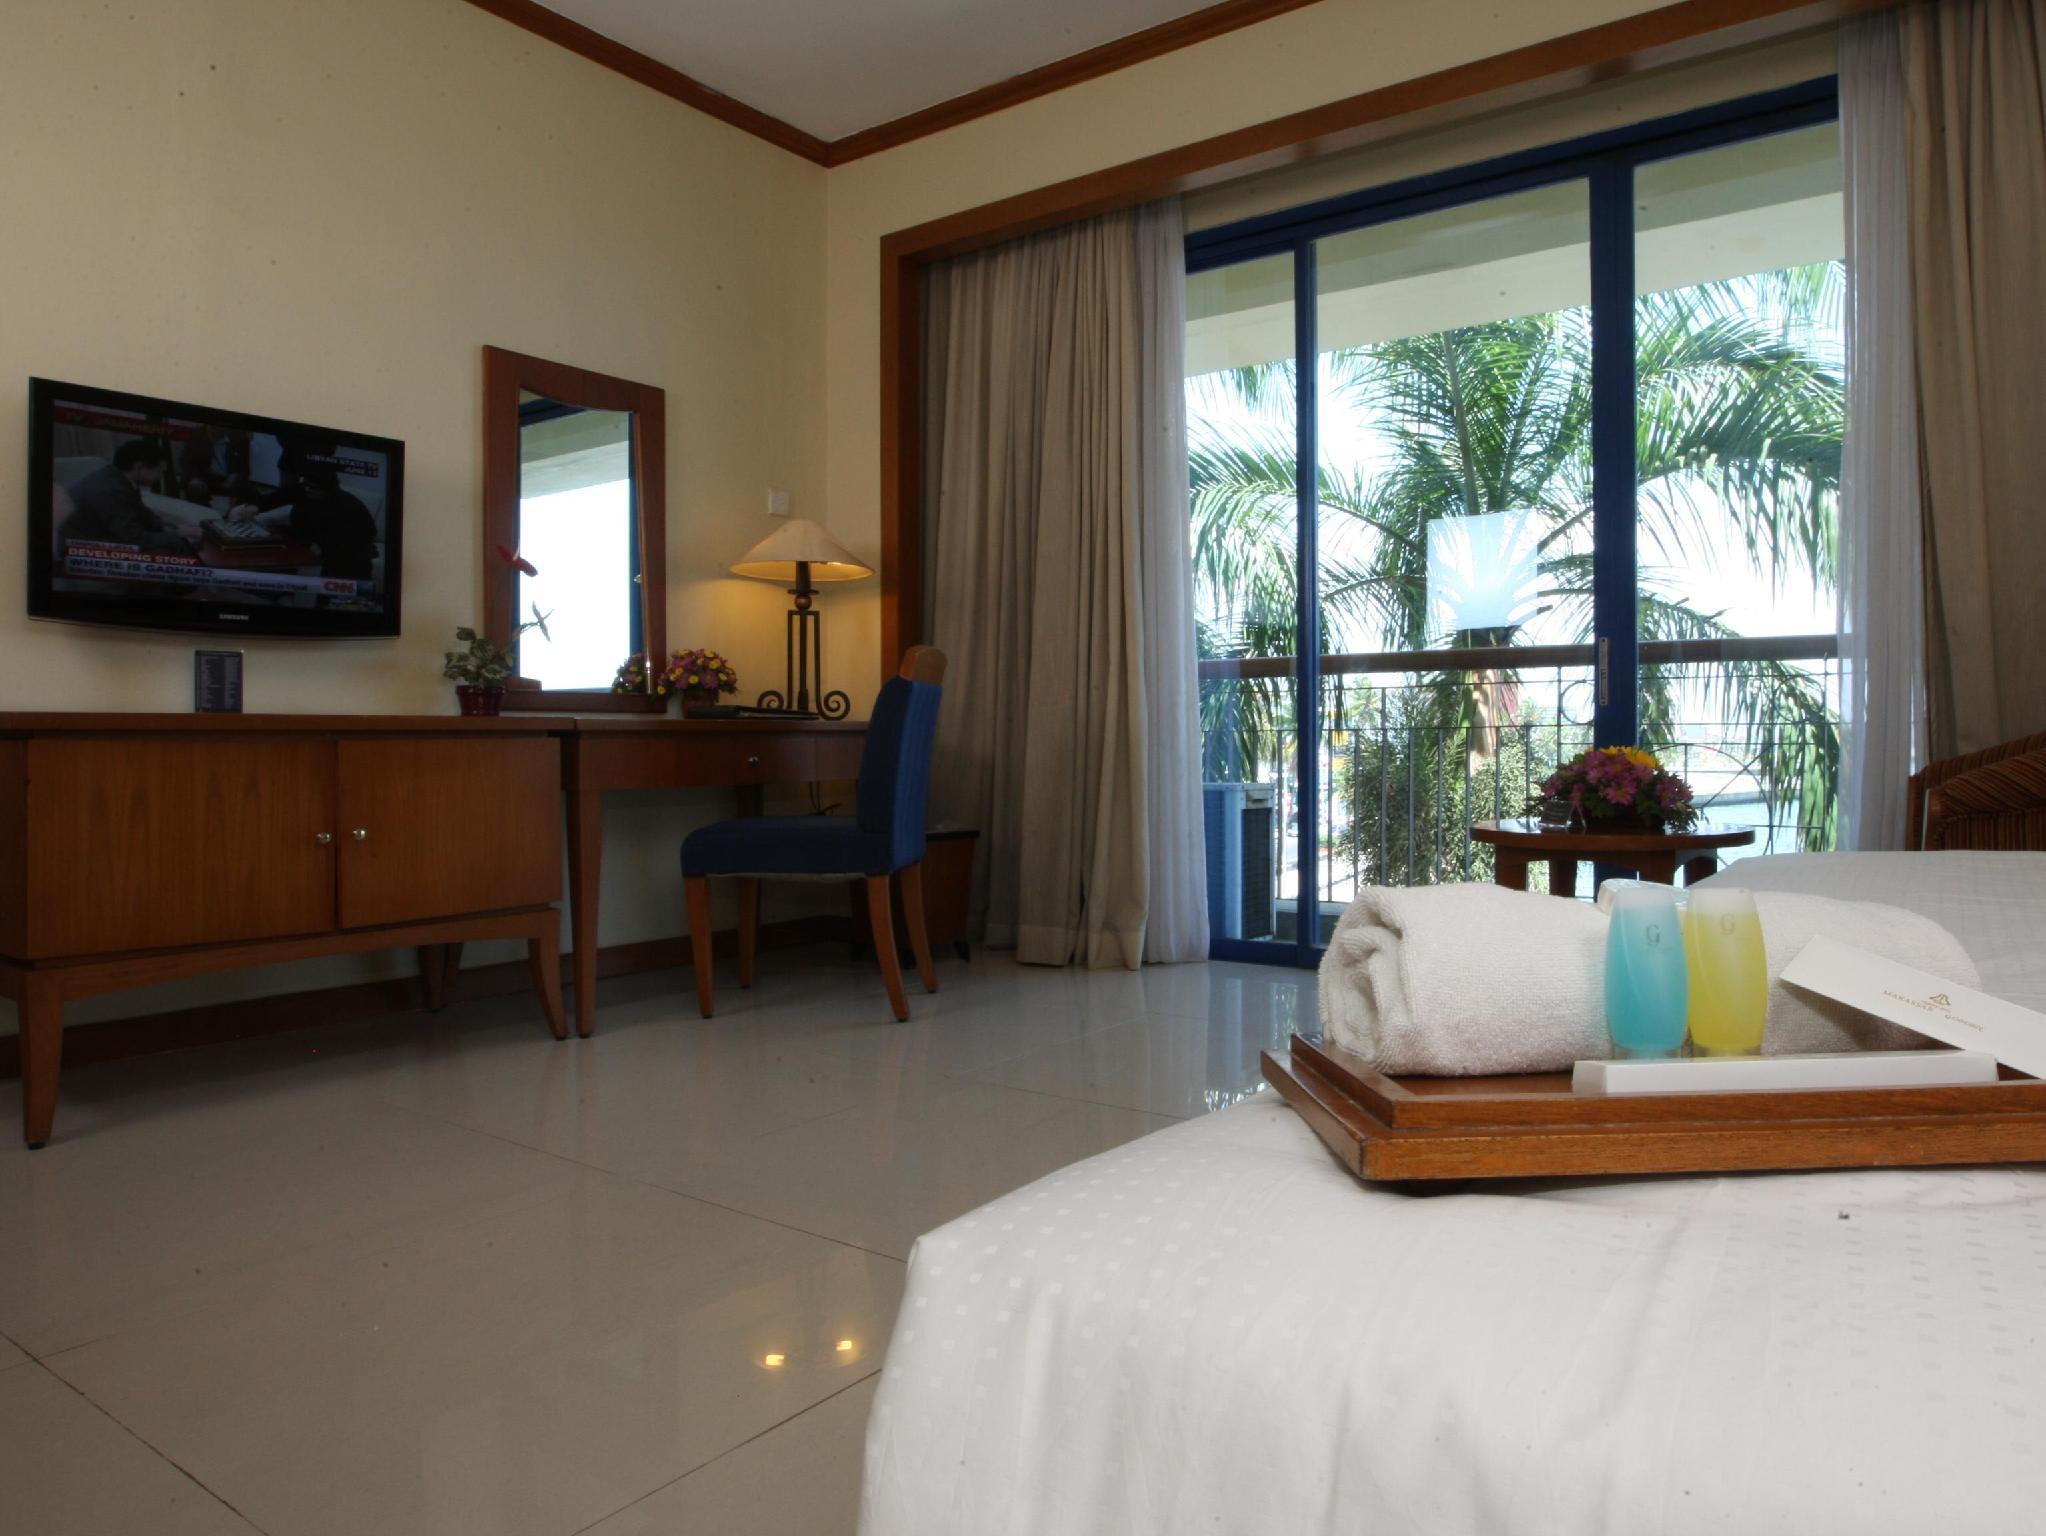 Deluxe Ranjang King Pemandangan Laut (Deluxe Sea View King Bed)